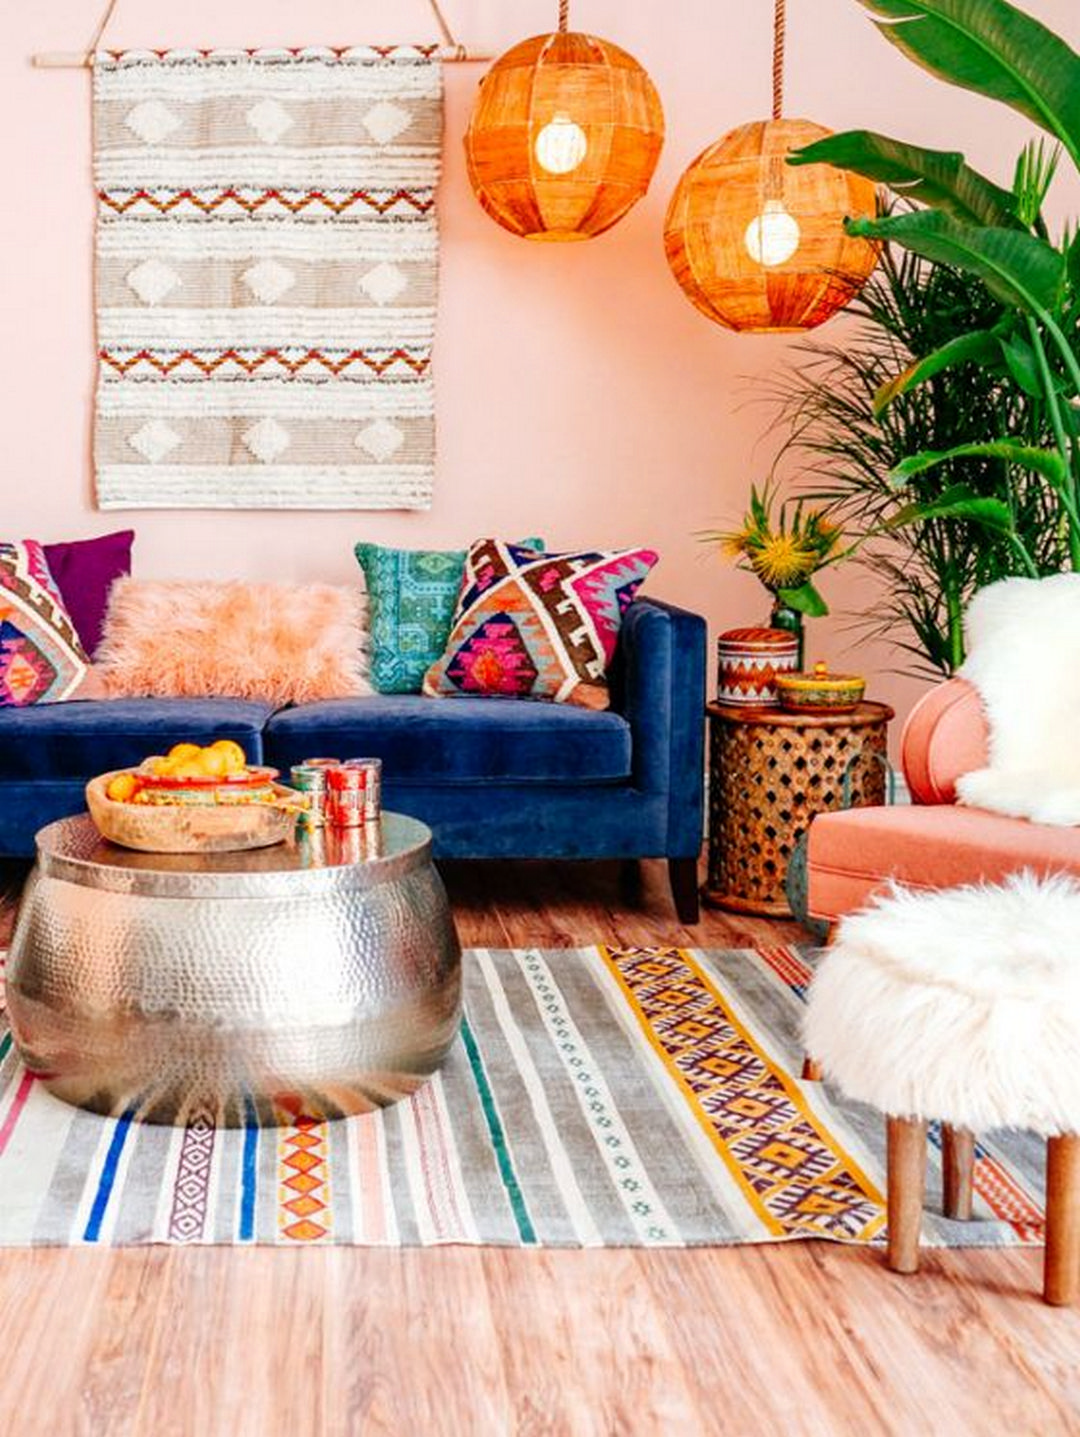 Living Room Remodel: 5 Tips to Revamp Your Space on a ... on Boho Bedroom Ideas On A Budget  id=58472